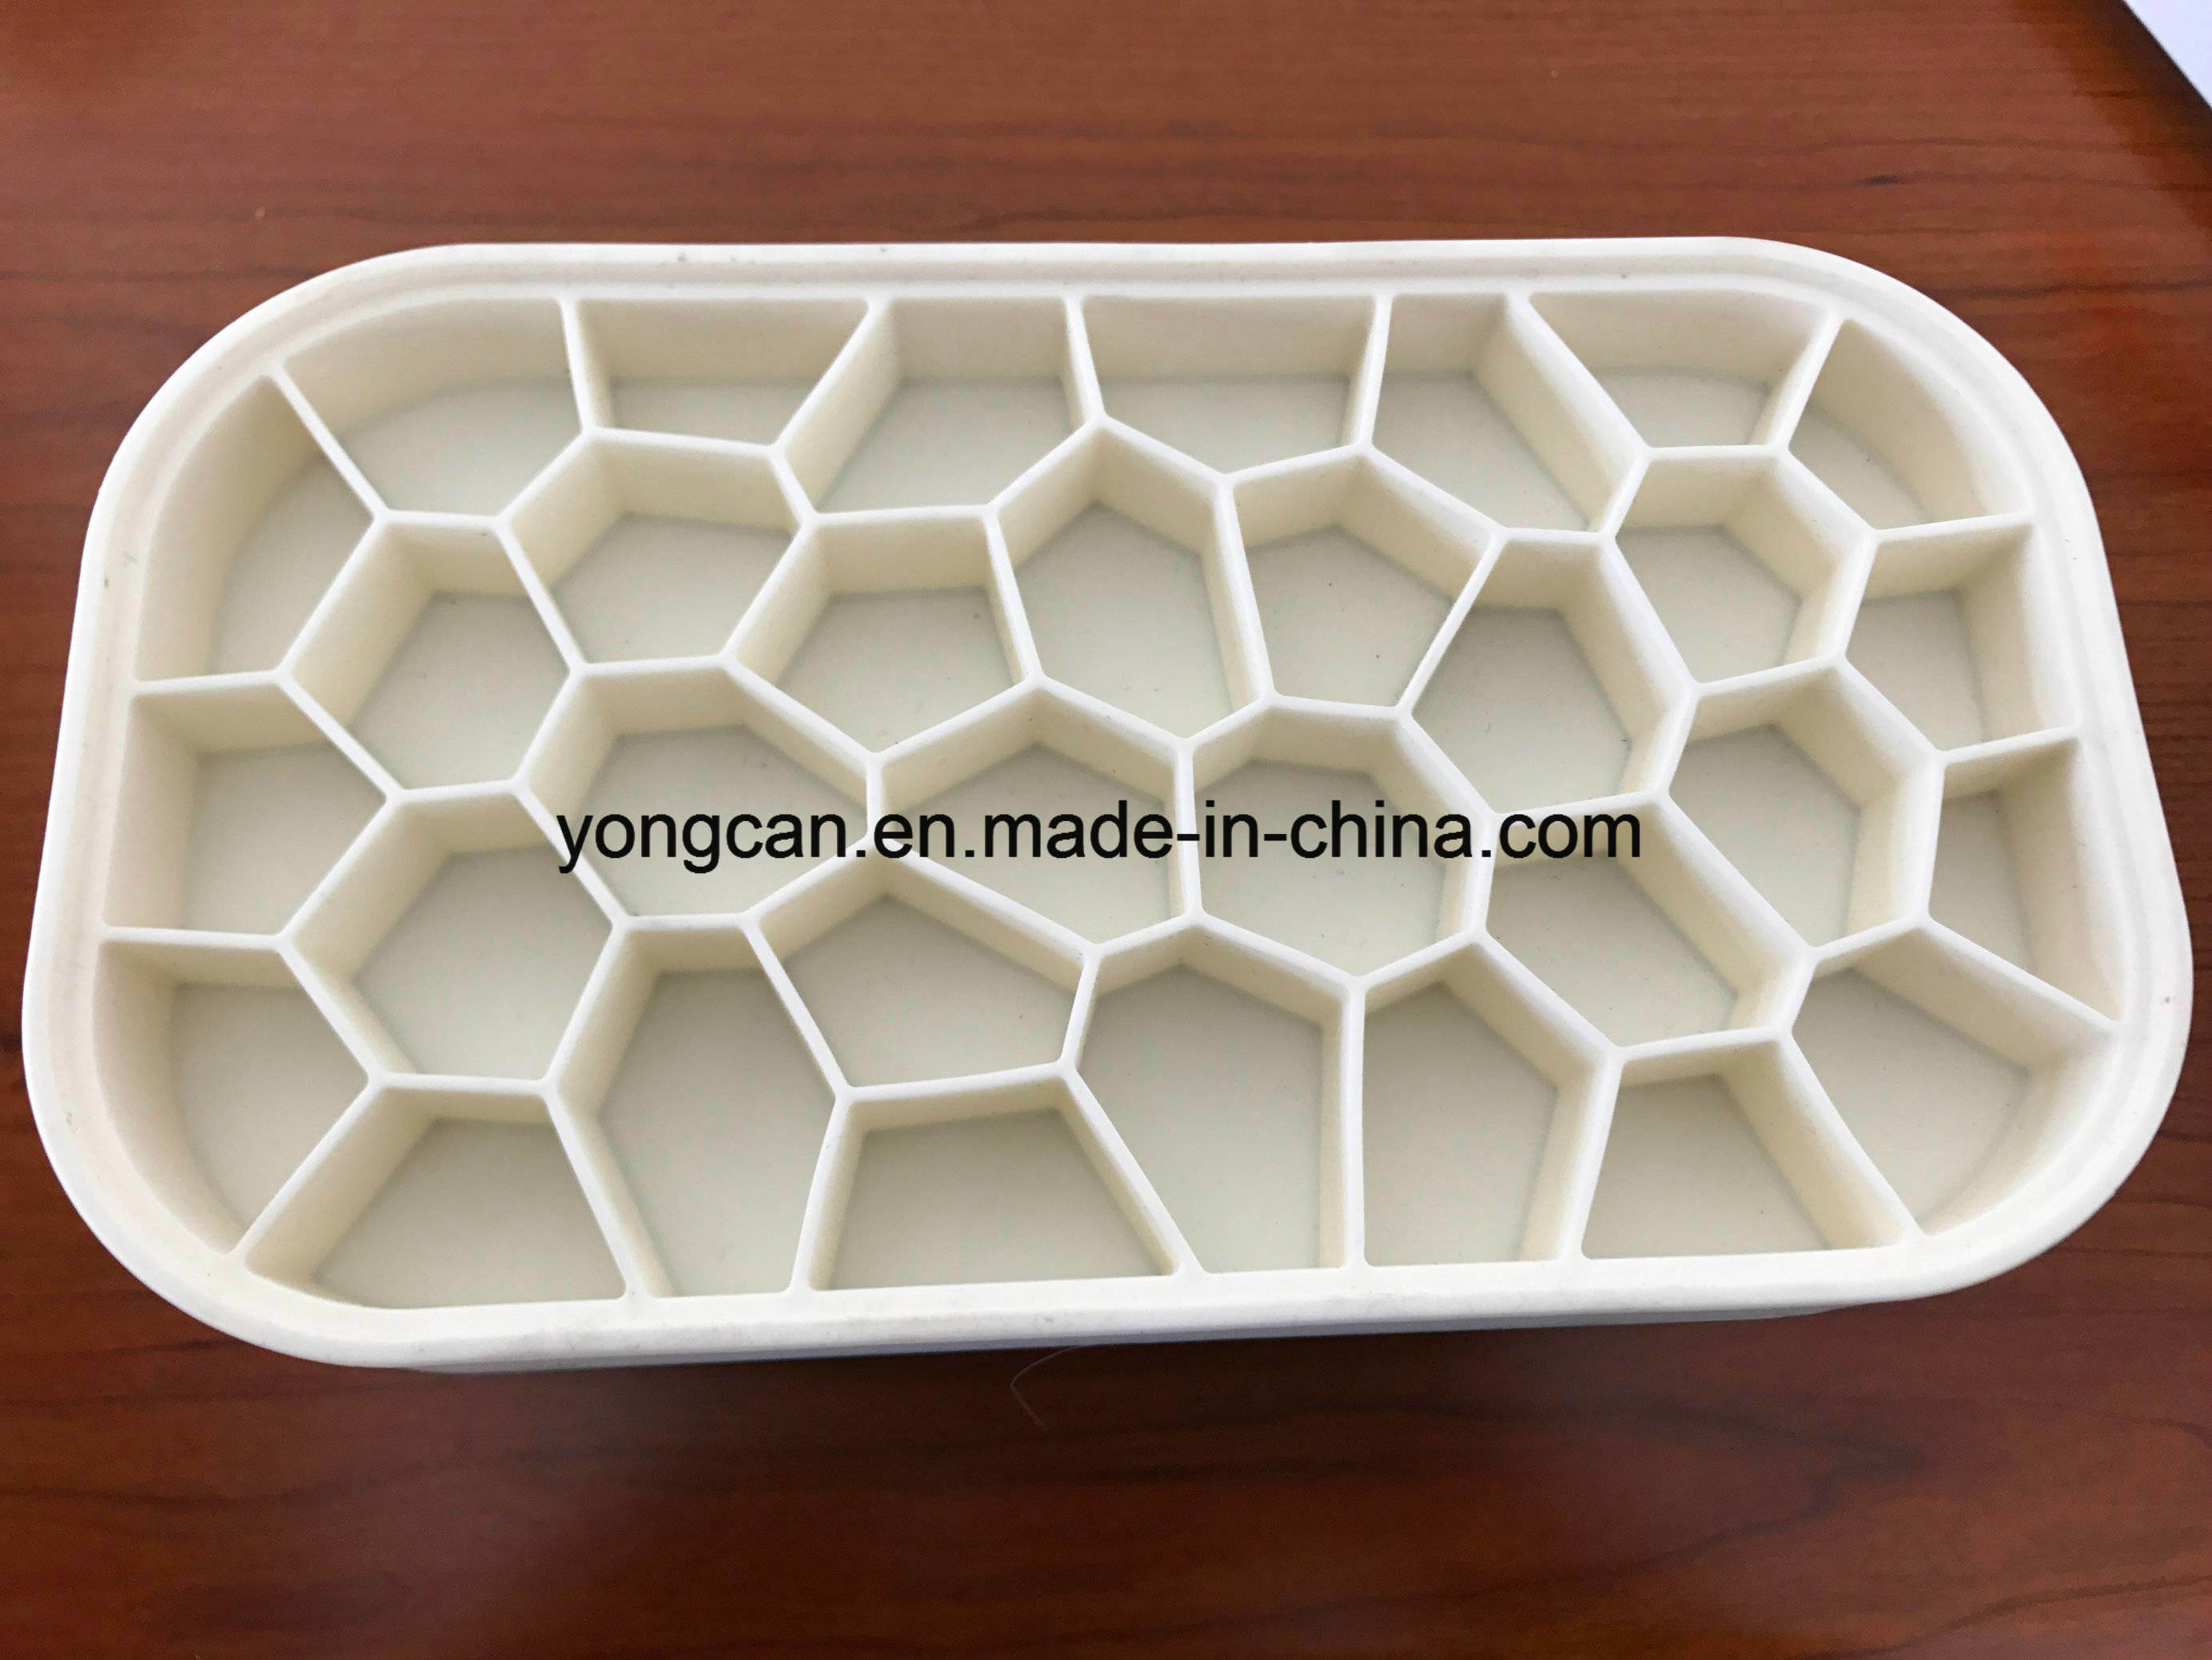 OEM Homemade Ice Cream Box/ Plastic Ice Box/ Silicone Rubber Mold Cooler Box